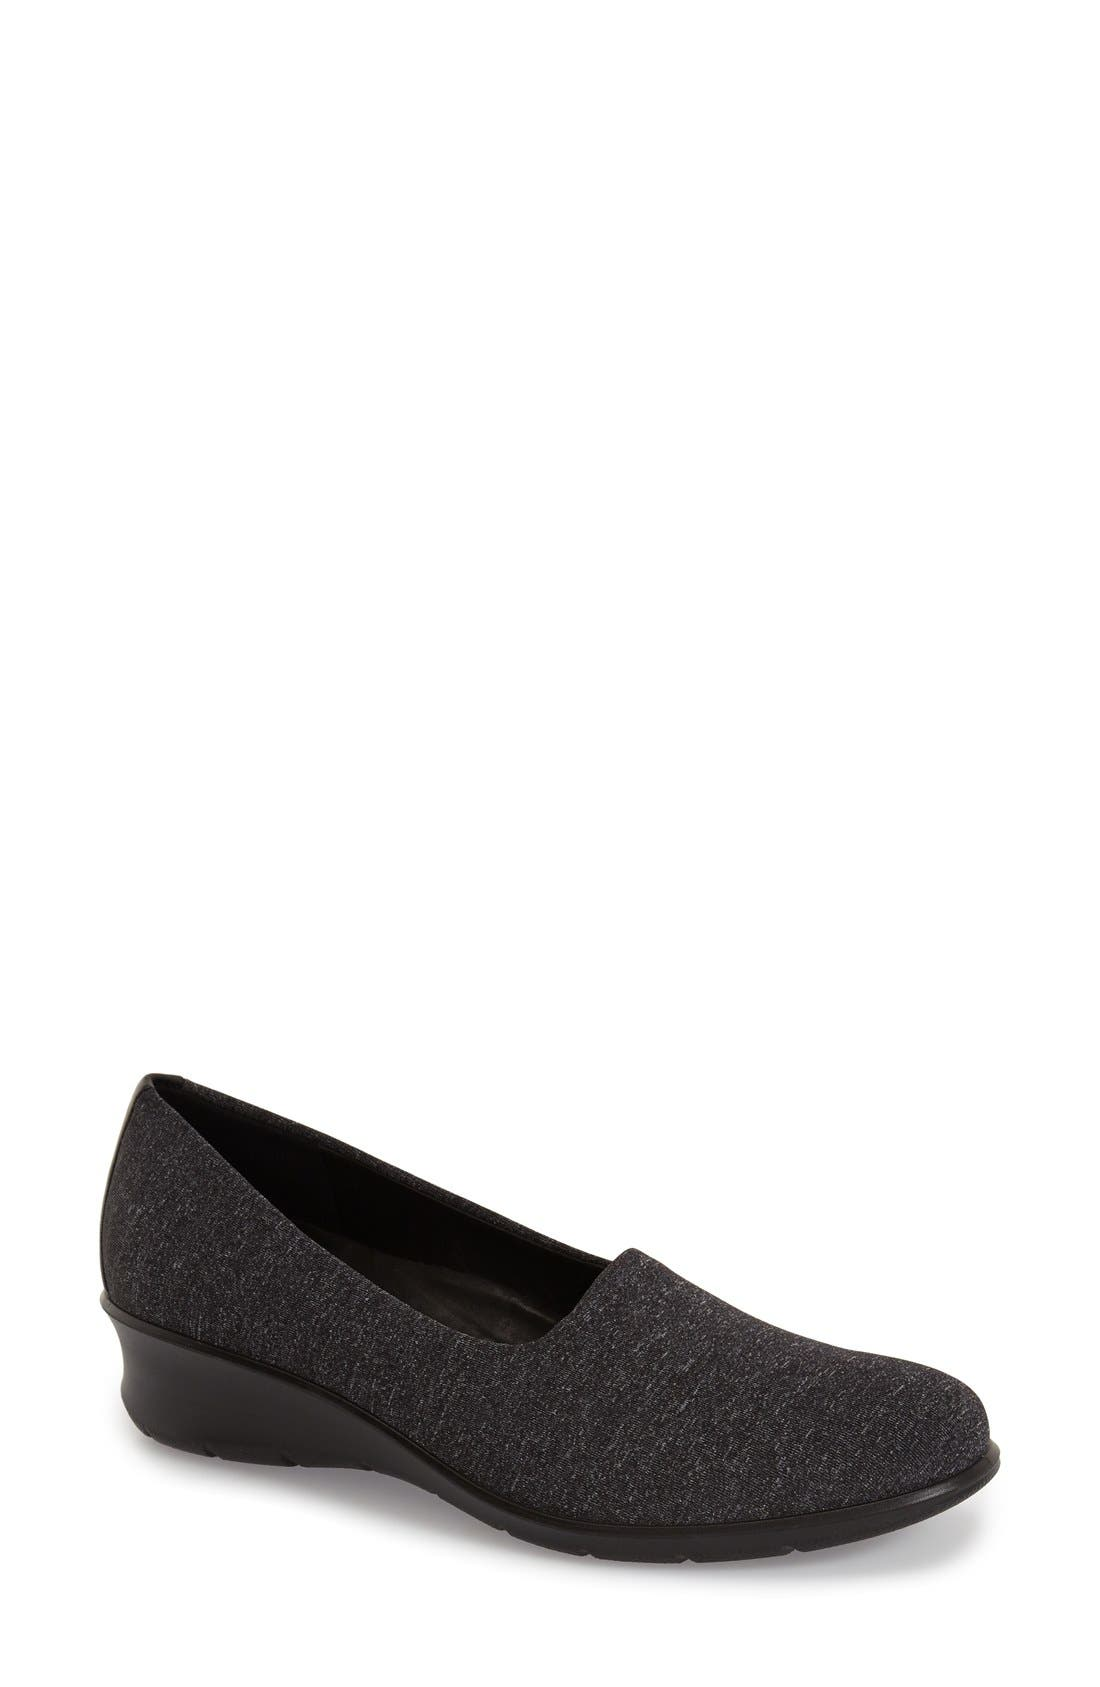 'Felicia - Stretch' Wedge Loafer, Main, color, 019